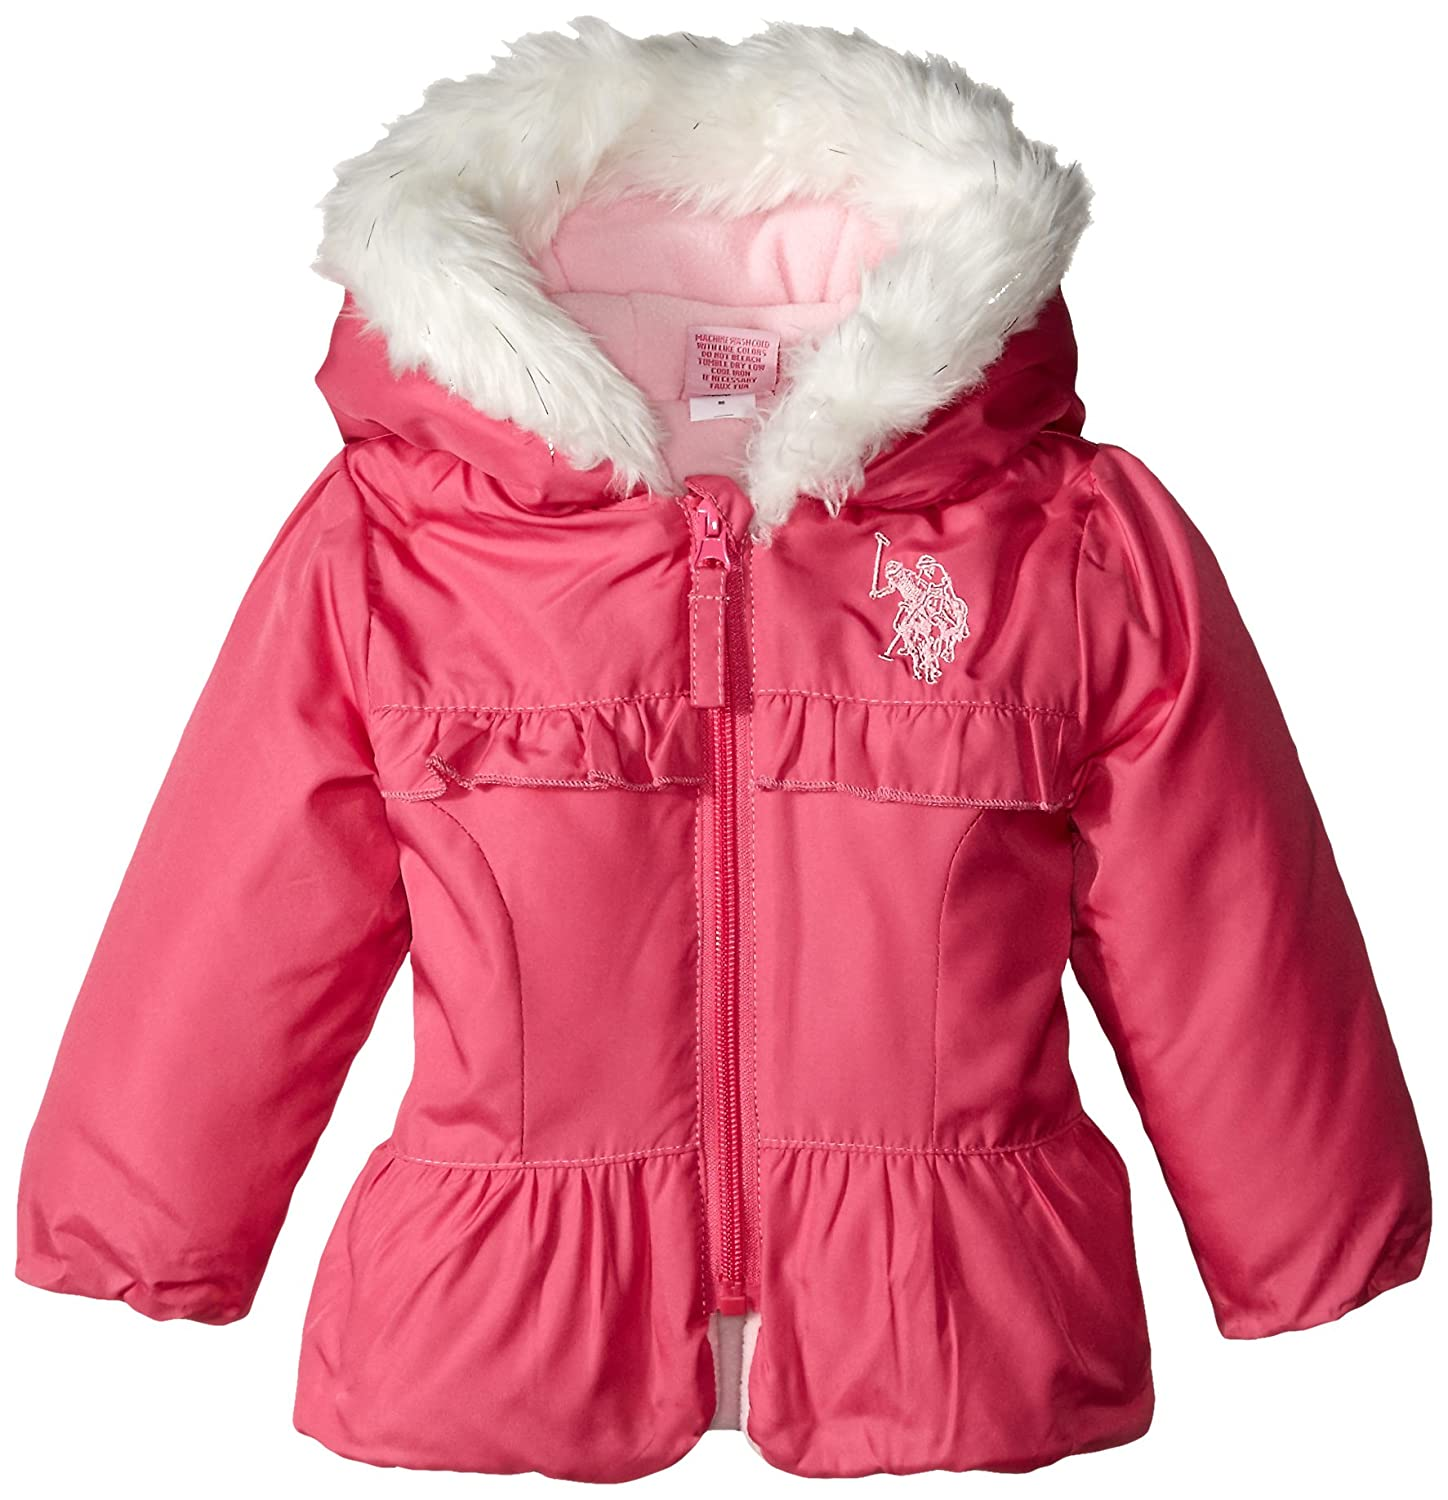 U.S Sizes Baby-Big Girls Bubble Jacket More Styles Polo Assn